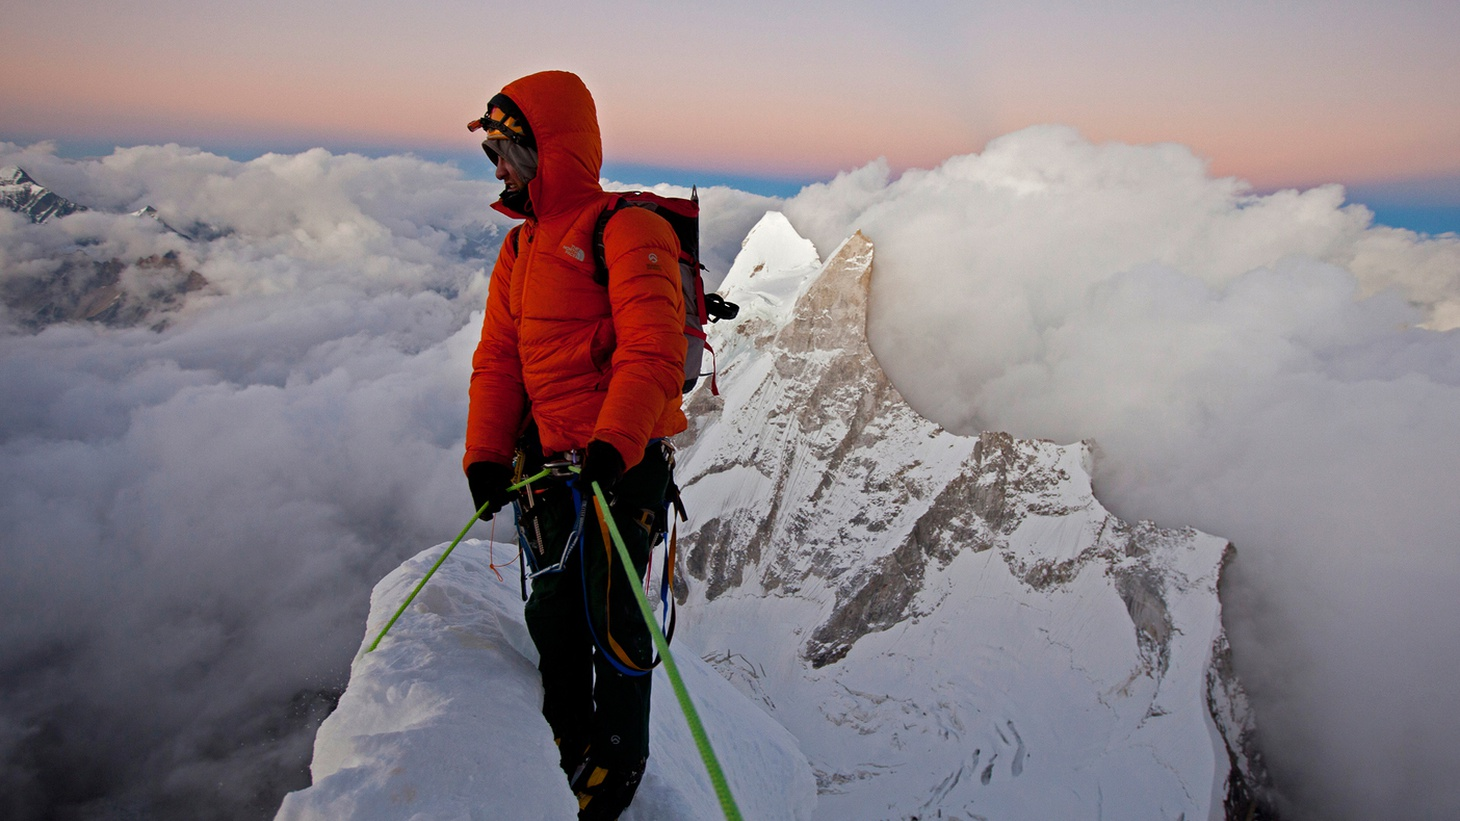 If at once you don't succeed summiting a mountain and it nearly kills you, should you try, try, try again? In 2008, three mountain climbers set out to be the first team to scale Meru, a 21,000 foot mountain in the Himalayas. Along with 200 pounds of gear, Conrad Anker, Renan Ozturk and Jimmy Chin brought cameras to document the climb.